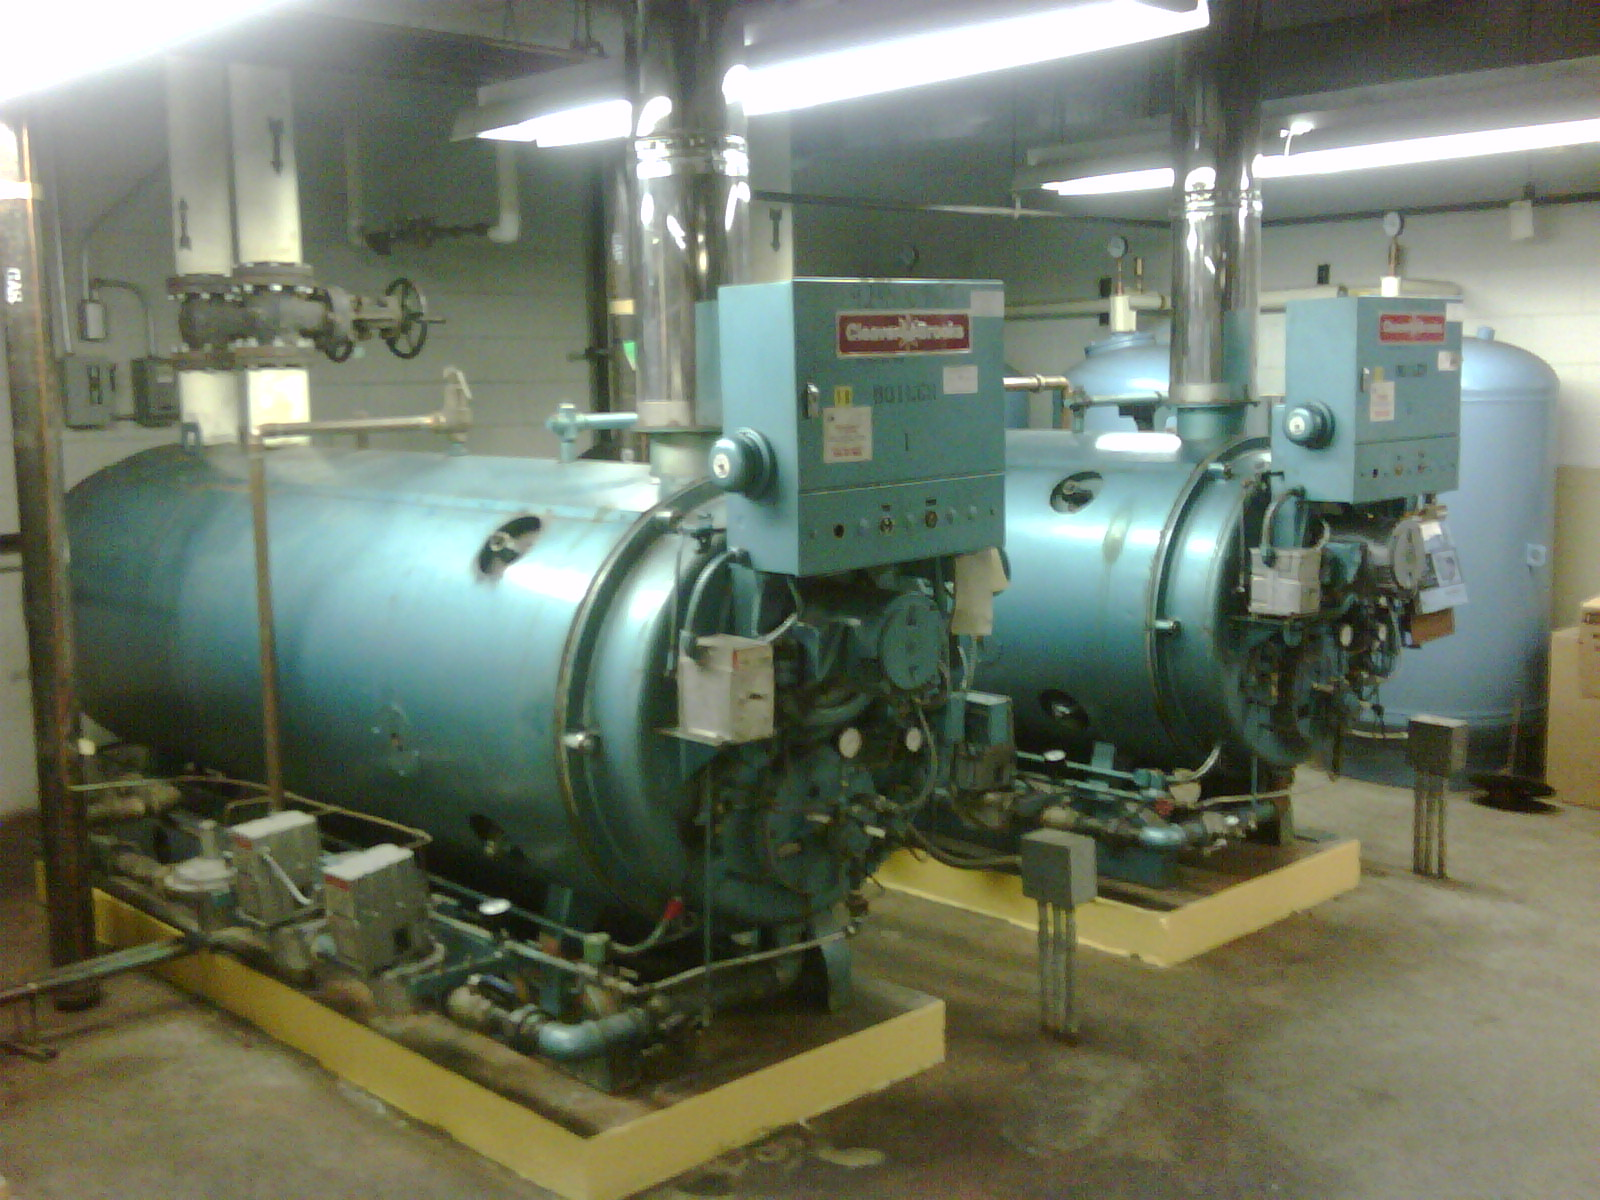 Cleaver Brooks Natural Gas Boilers | Environmental Air Systems